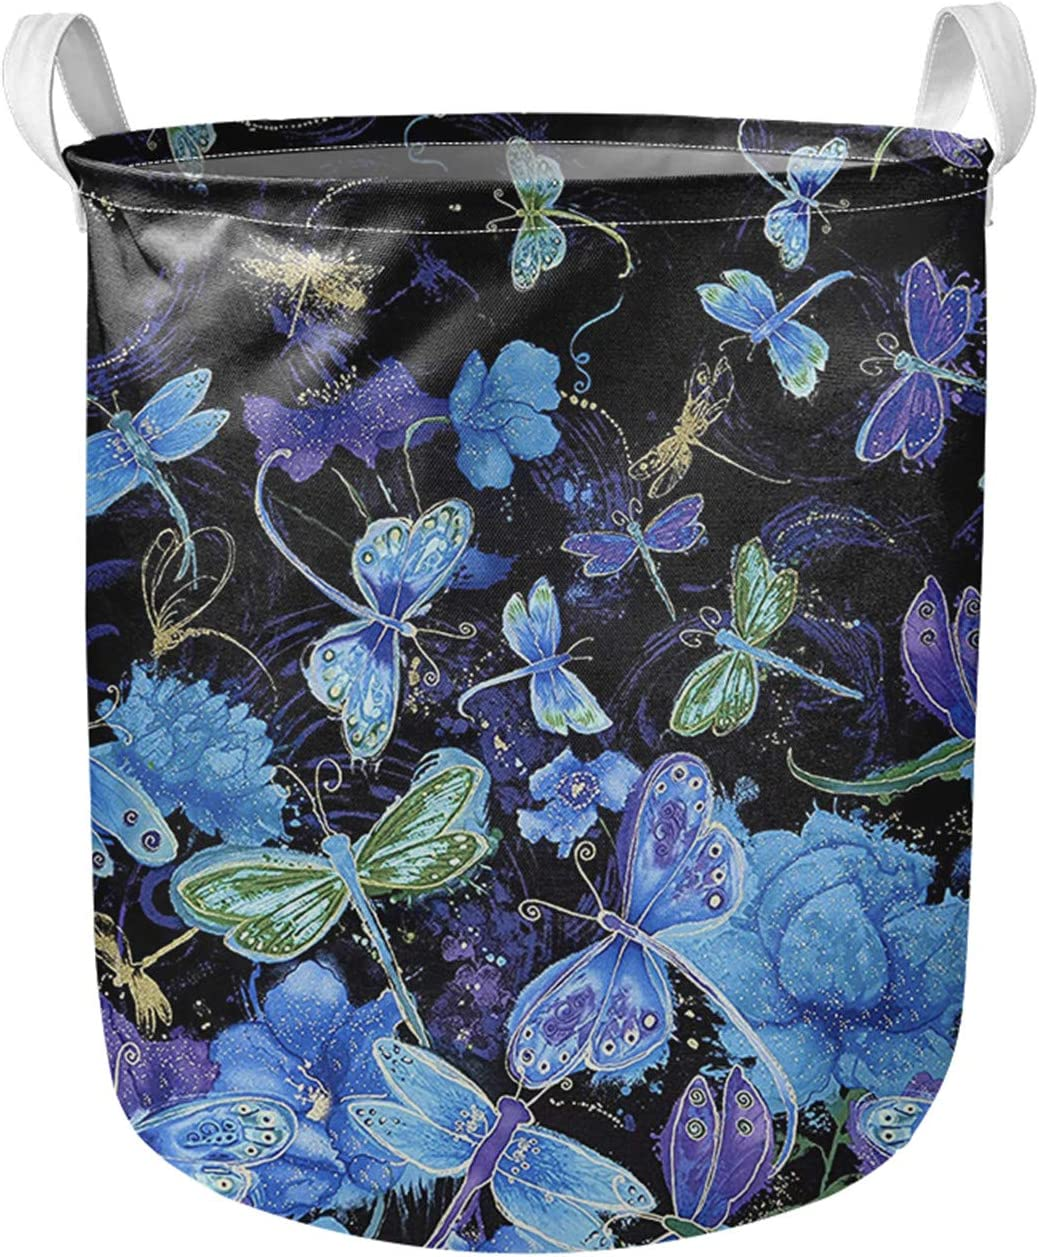 Frestree Large Laundry Basket Linen Over item handling Stora Max 46% OFF Waterproof Collapsible